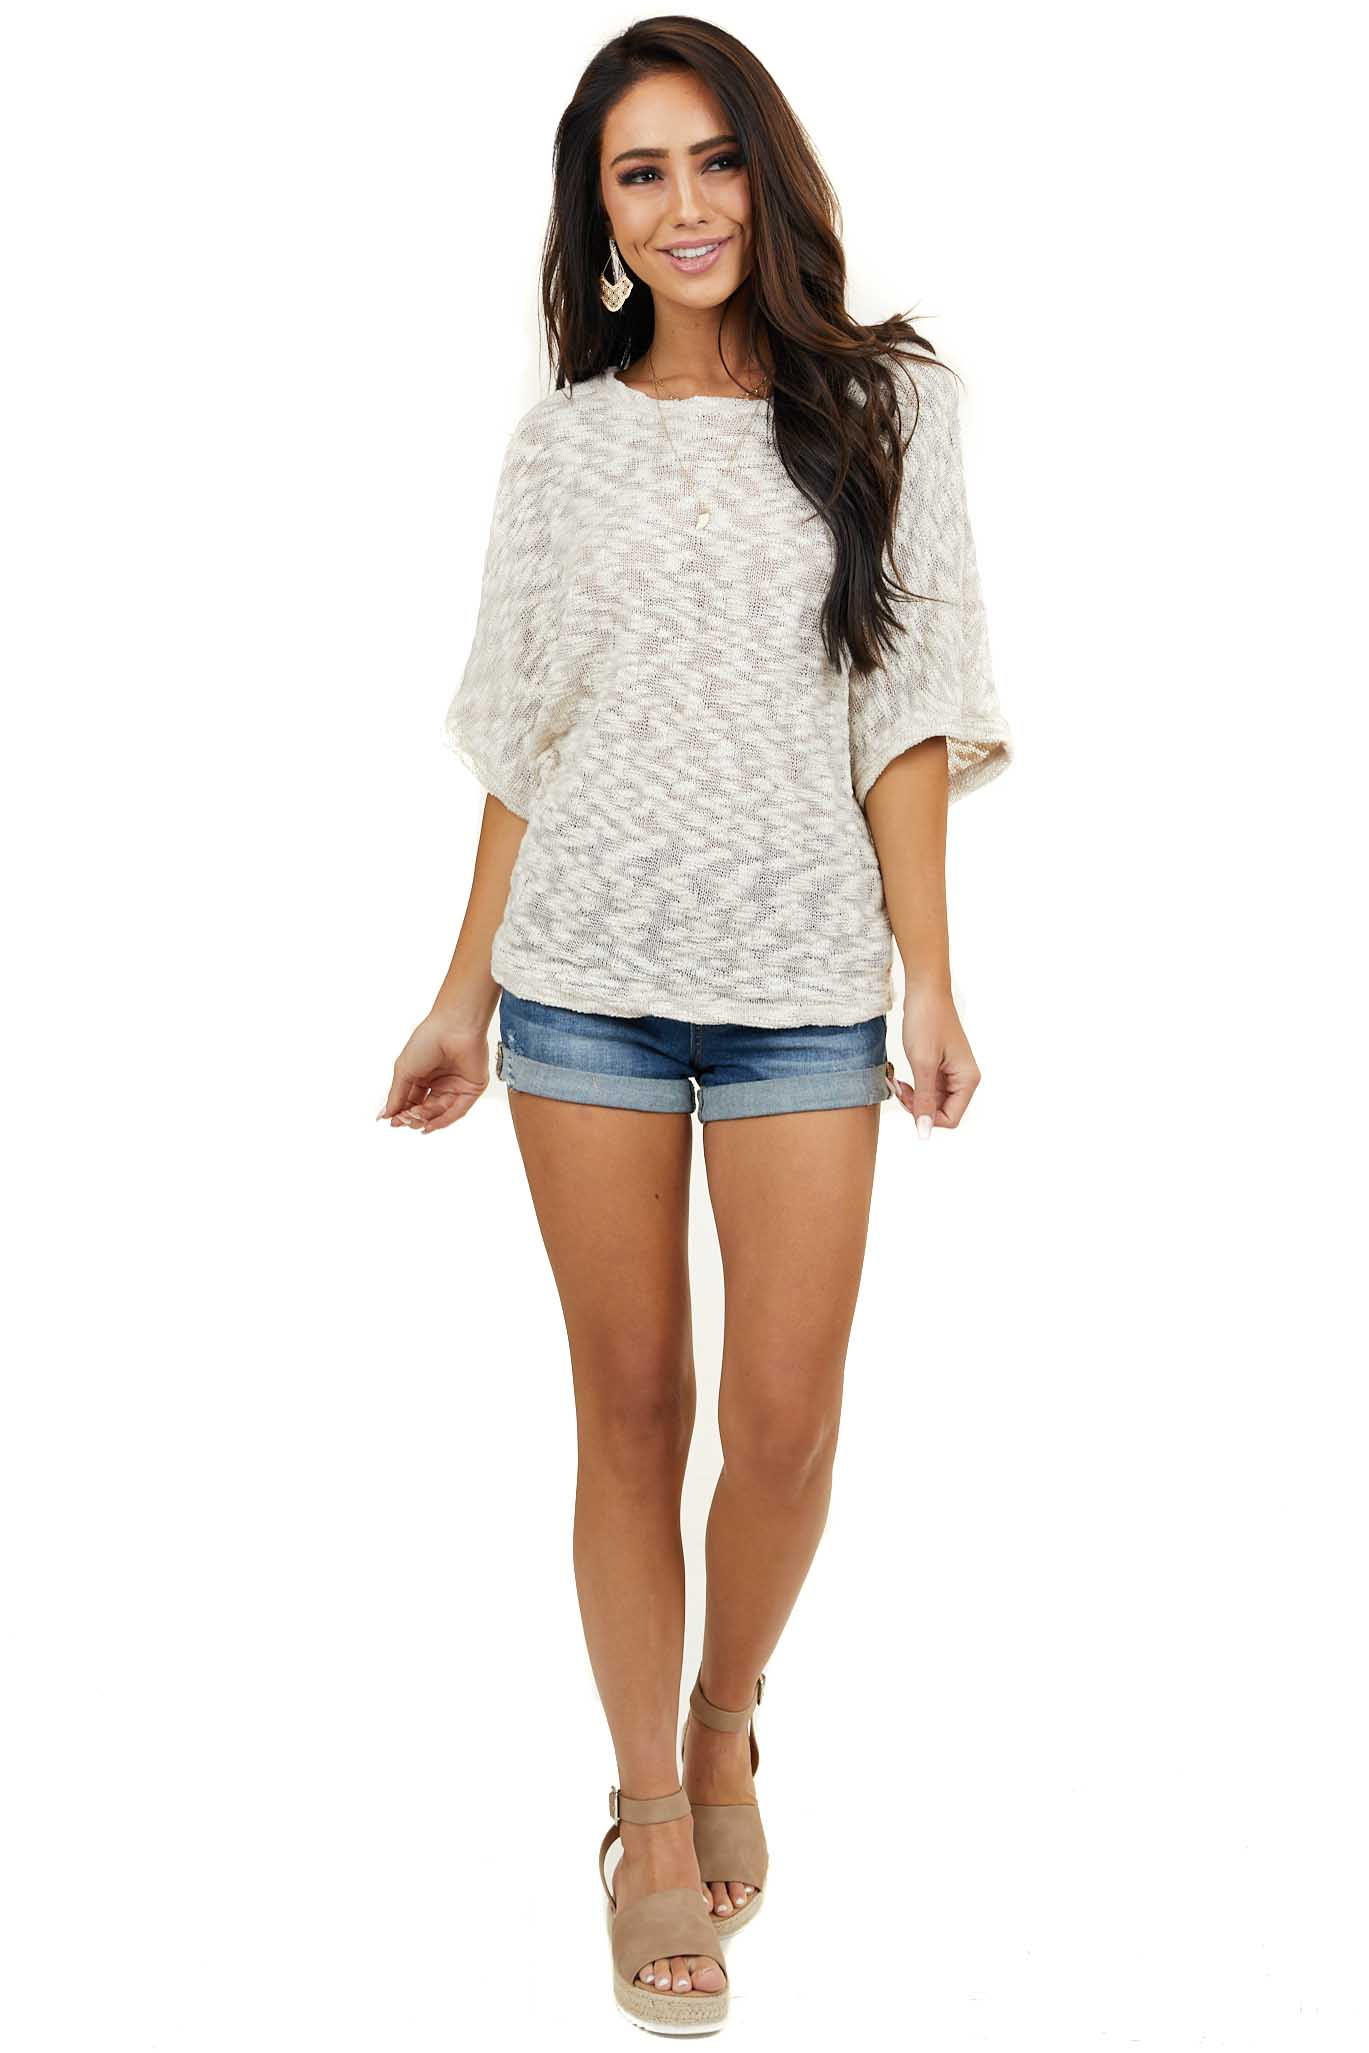 Beige Rounded Neckline Knit Top with Dolman Short Sleeves